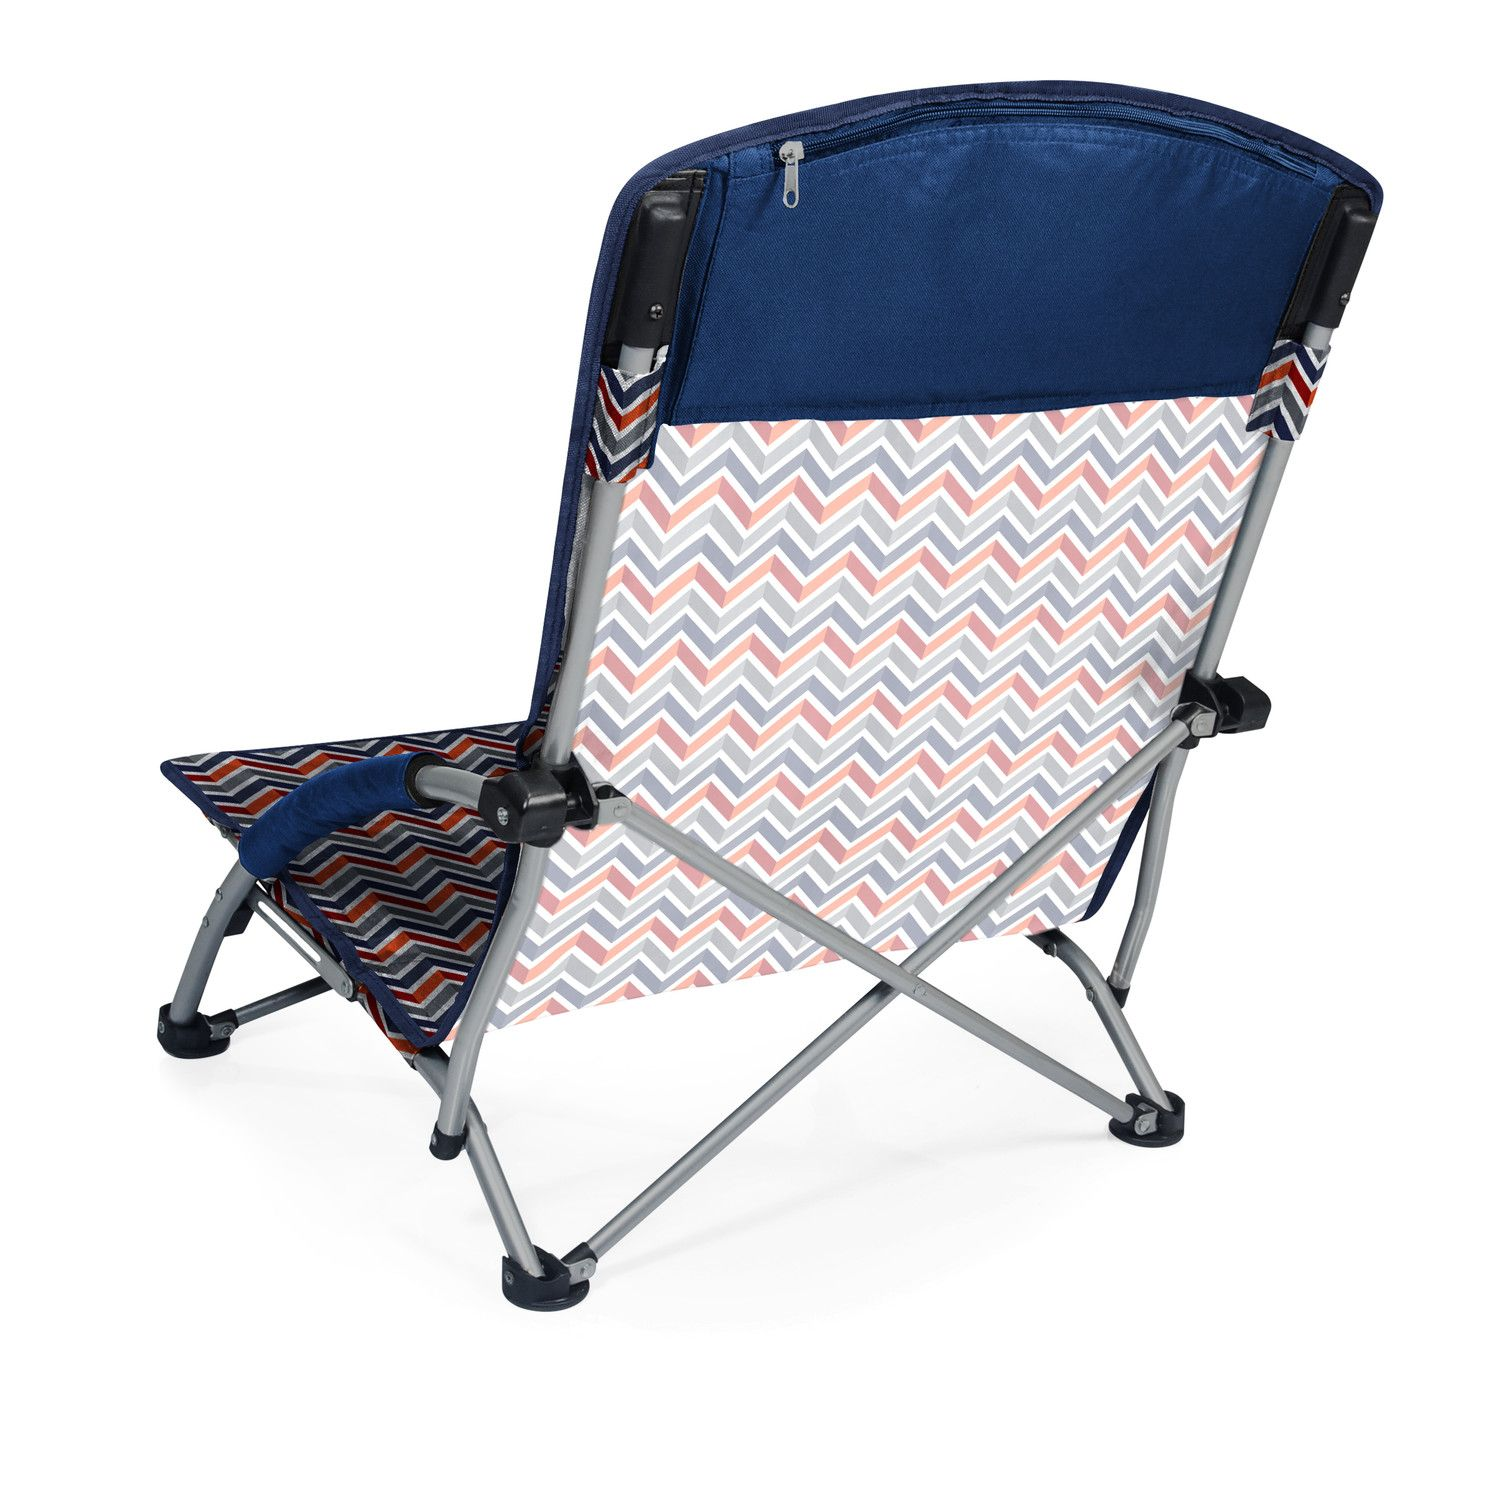 Picnic Time Vibe Tranquility Portable Beach Chair